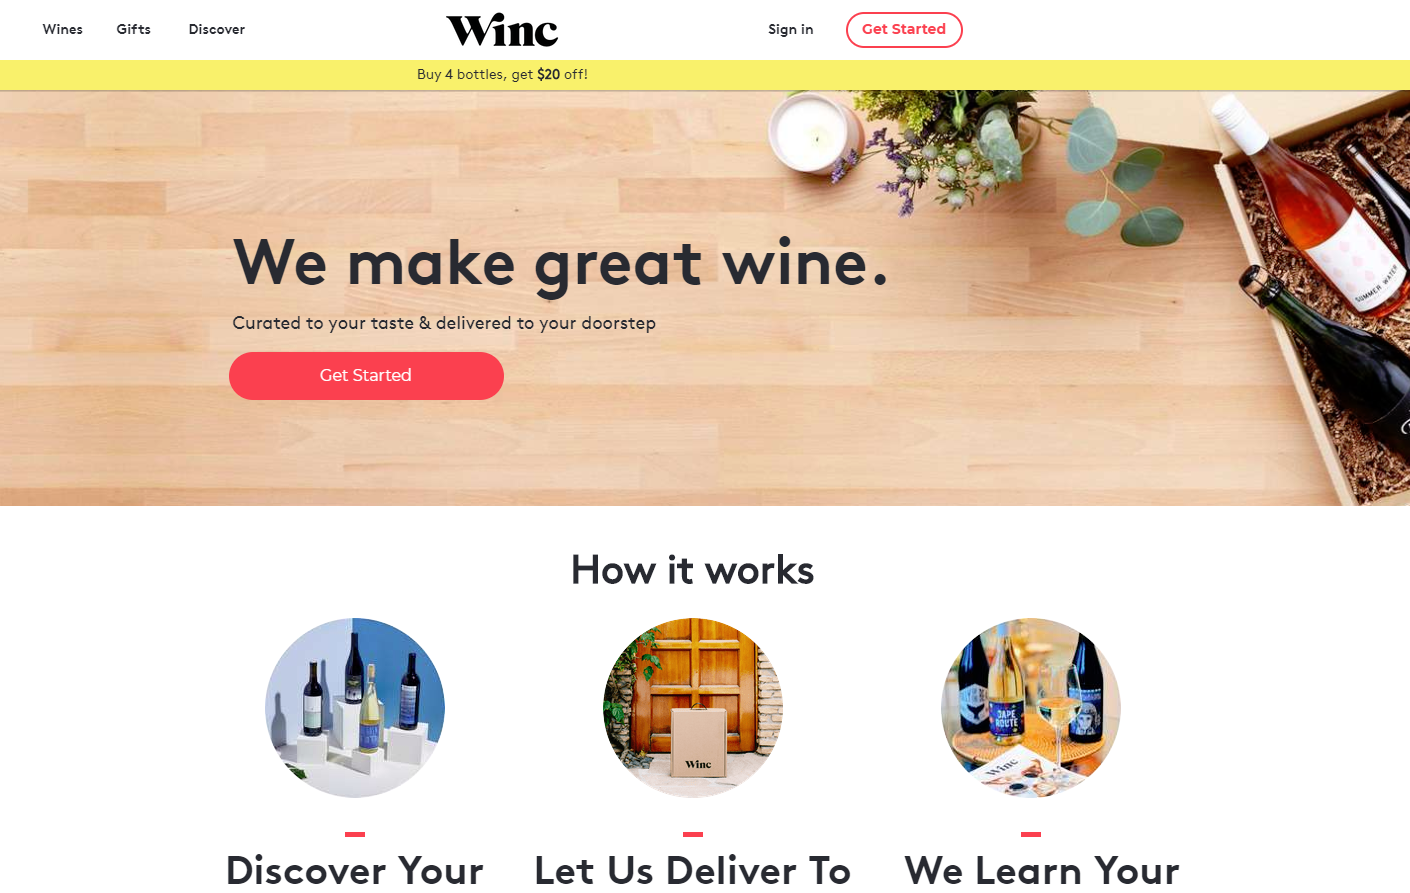 Winc home page